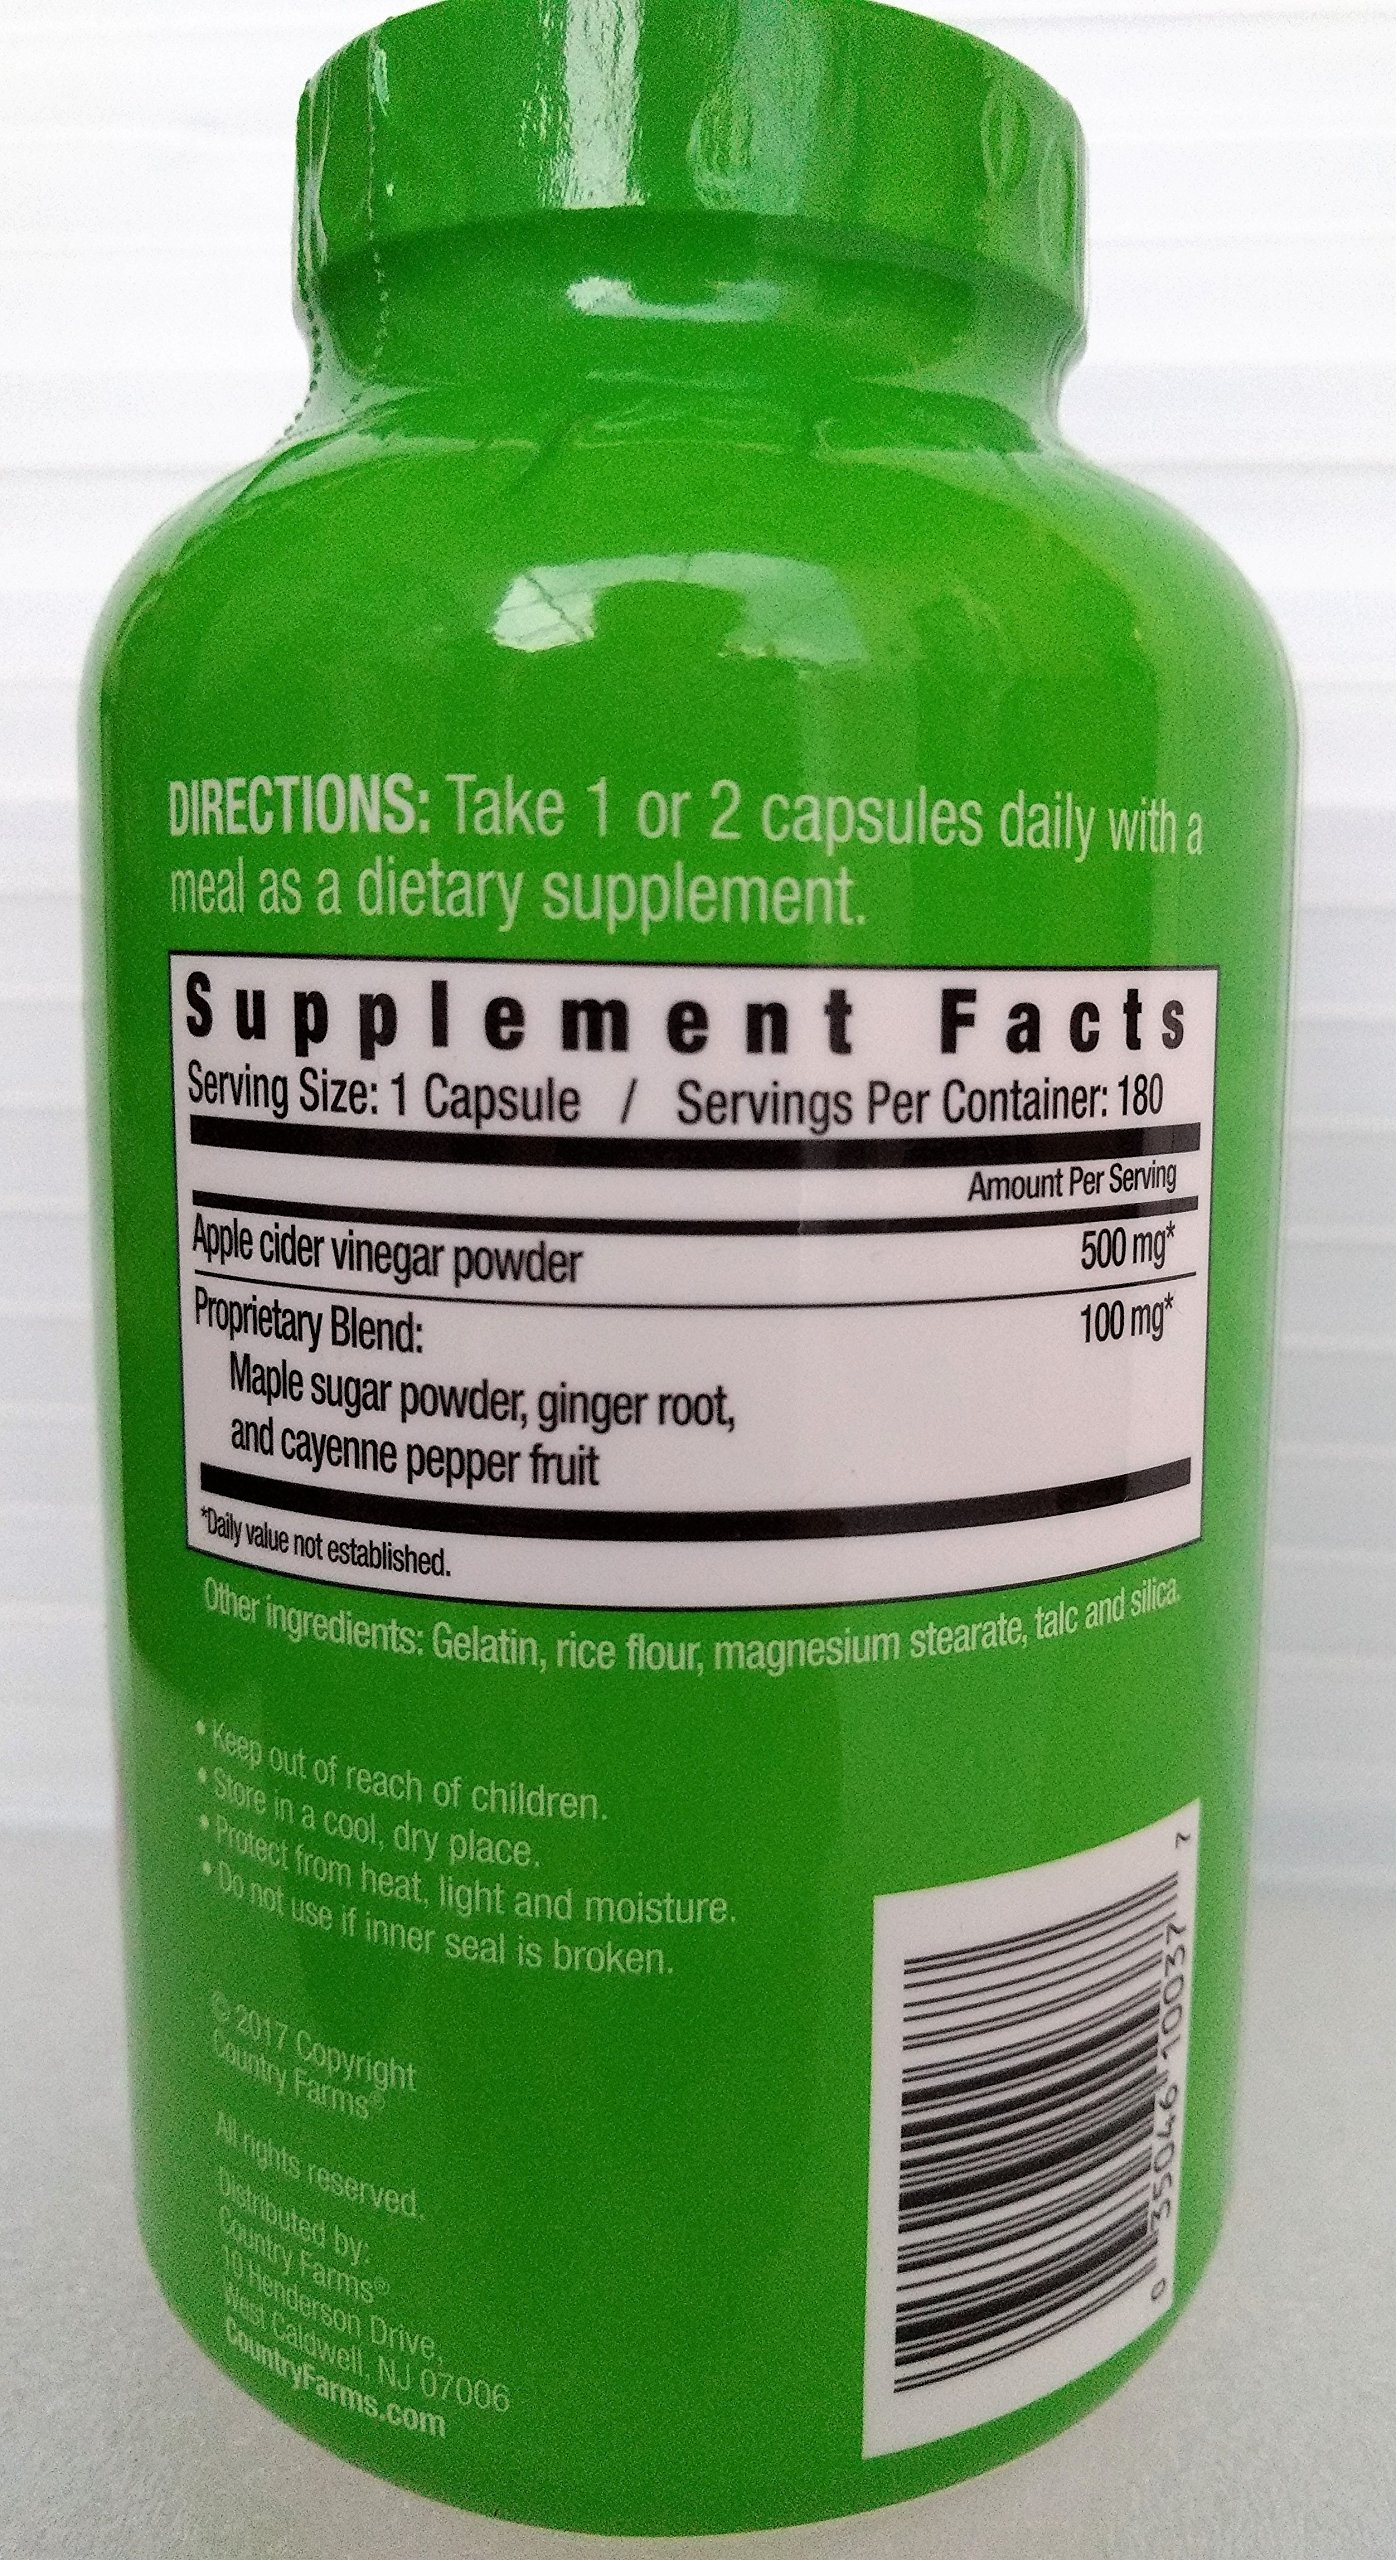 Country Farms Apple Cider Vinegar 500mg 180 capsules with Ginger, Cayenne and Maple by Country Farms (Image #2)